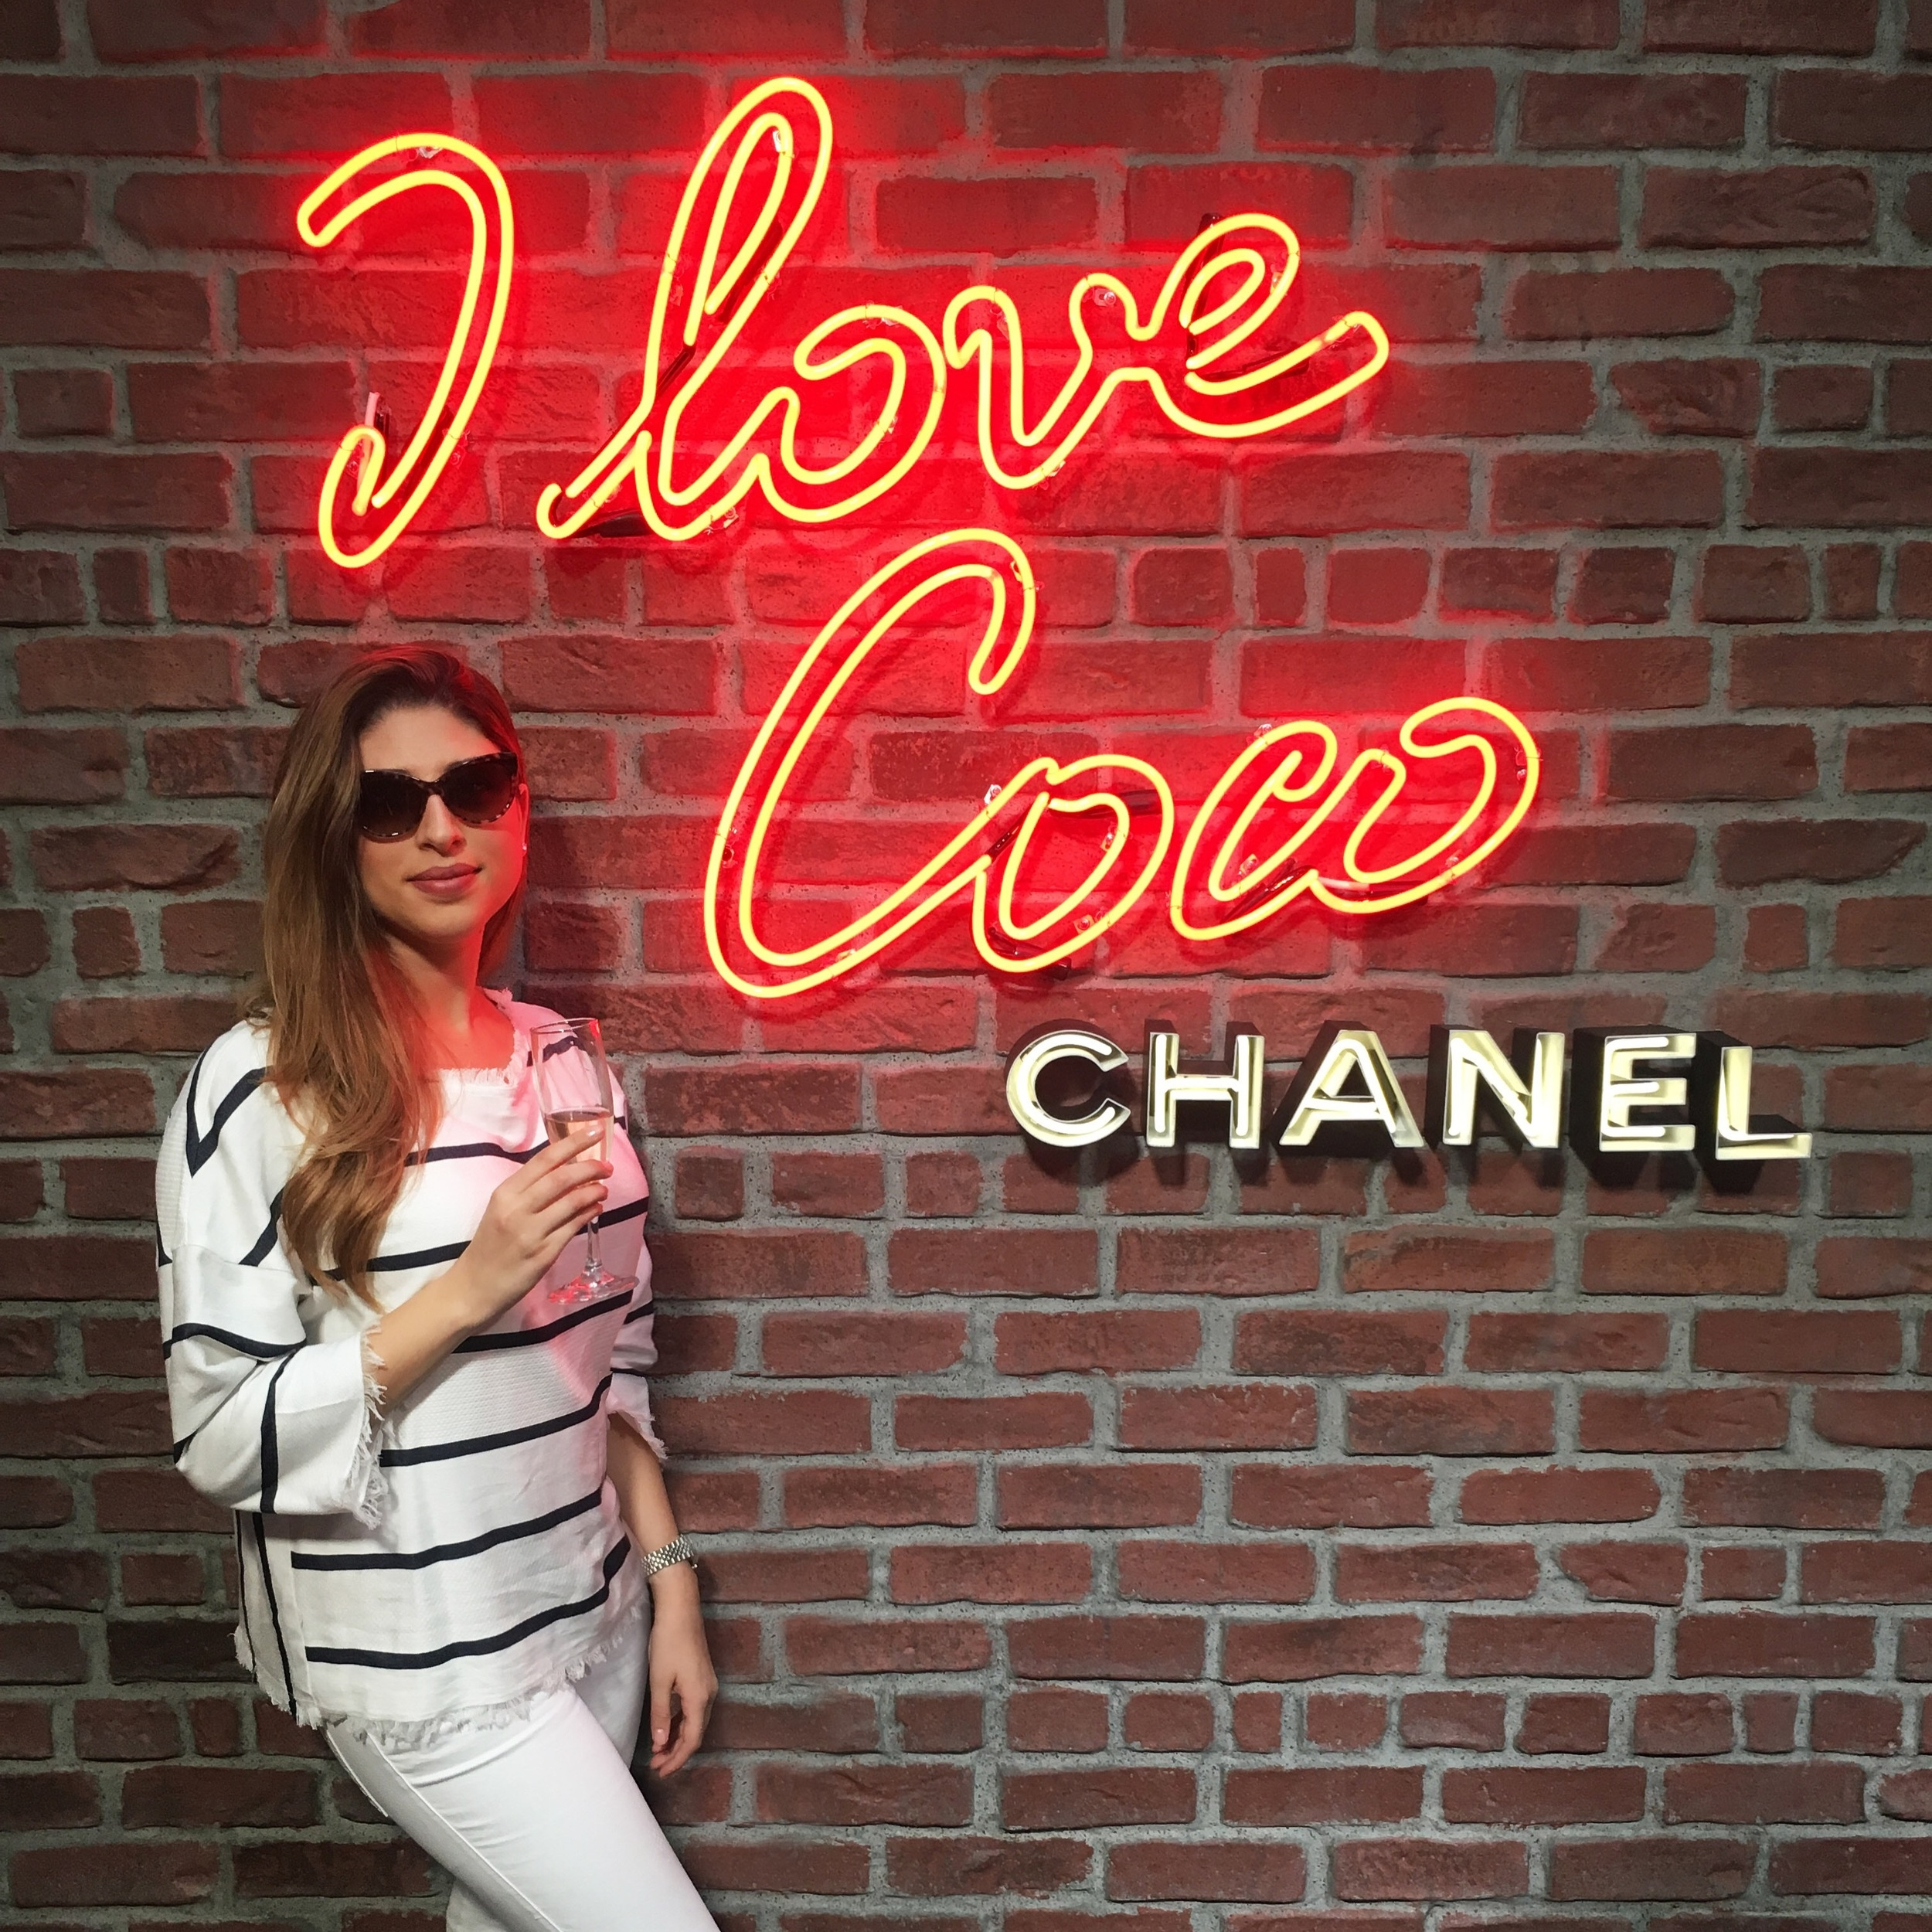 Mel Ronnie Chanel I Love Coco Loves LA